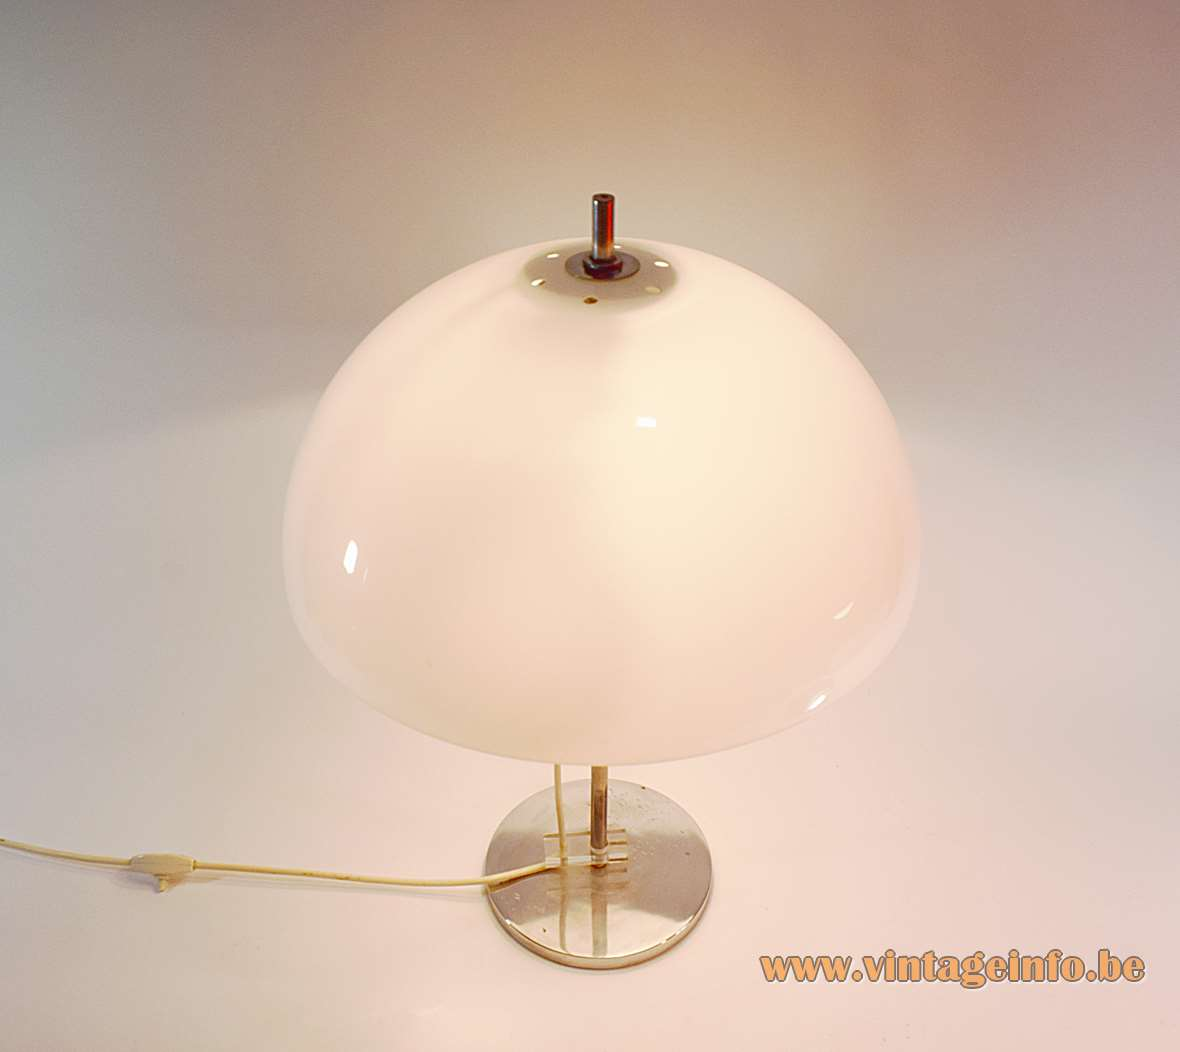 Gepo white mushroom table lamp in chrome and acrylic adjustable with 2 E27 sockets 1960s 1970s